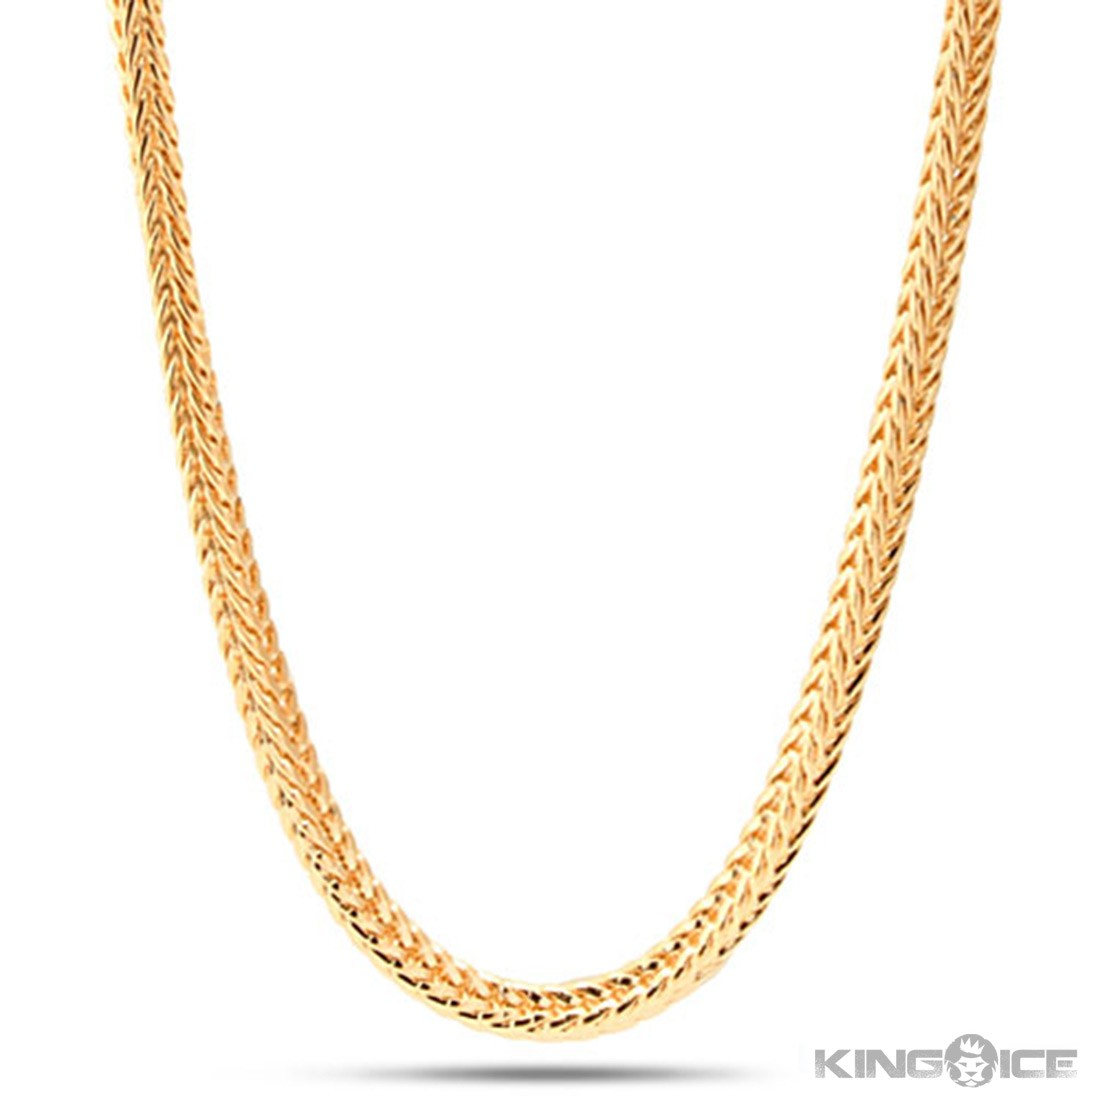 Chain HD PNG - 89790